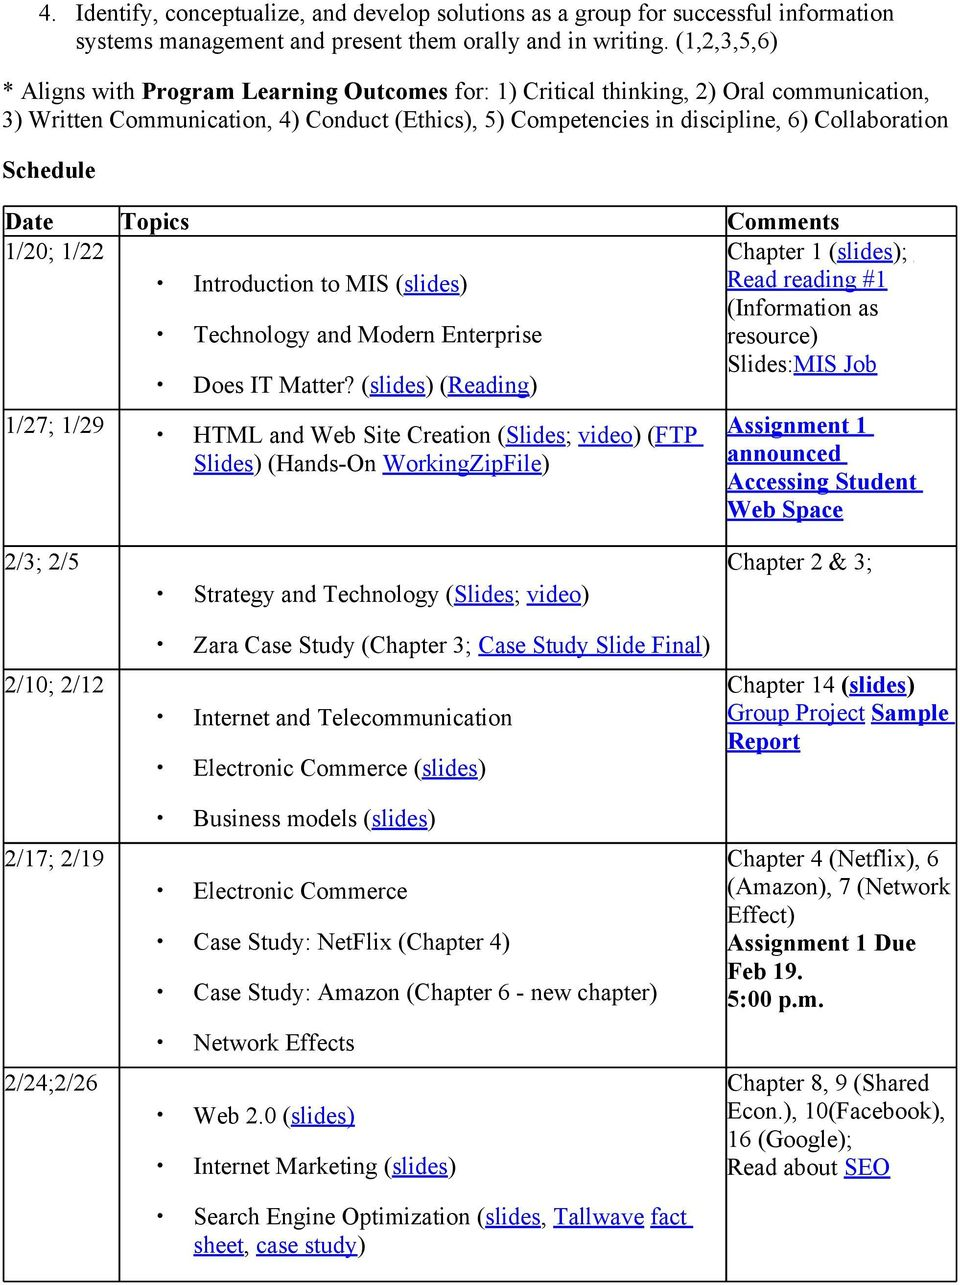 Schedule Date Topics Comments 1/20; 1/22 Chapter 1 (slides); Introduction to MIS (slides) Read reading #1 (Information as Technology and Modern Enterprise resource) Does IT Matter?